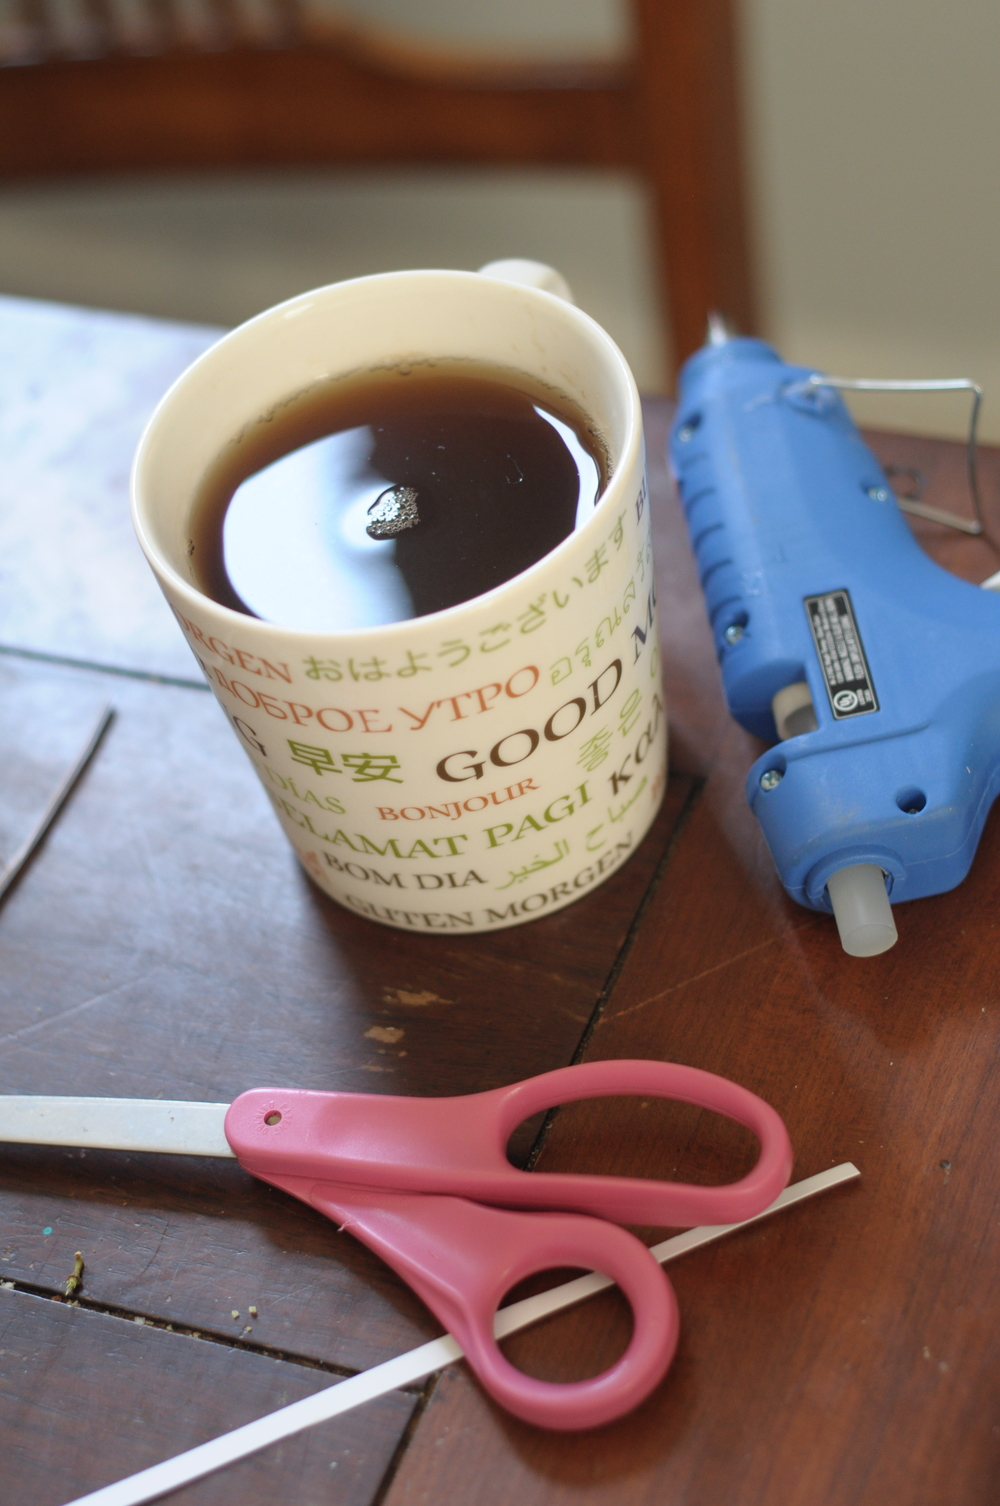 Glue gun, scissors, and afternoon tea? Check.